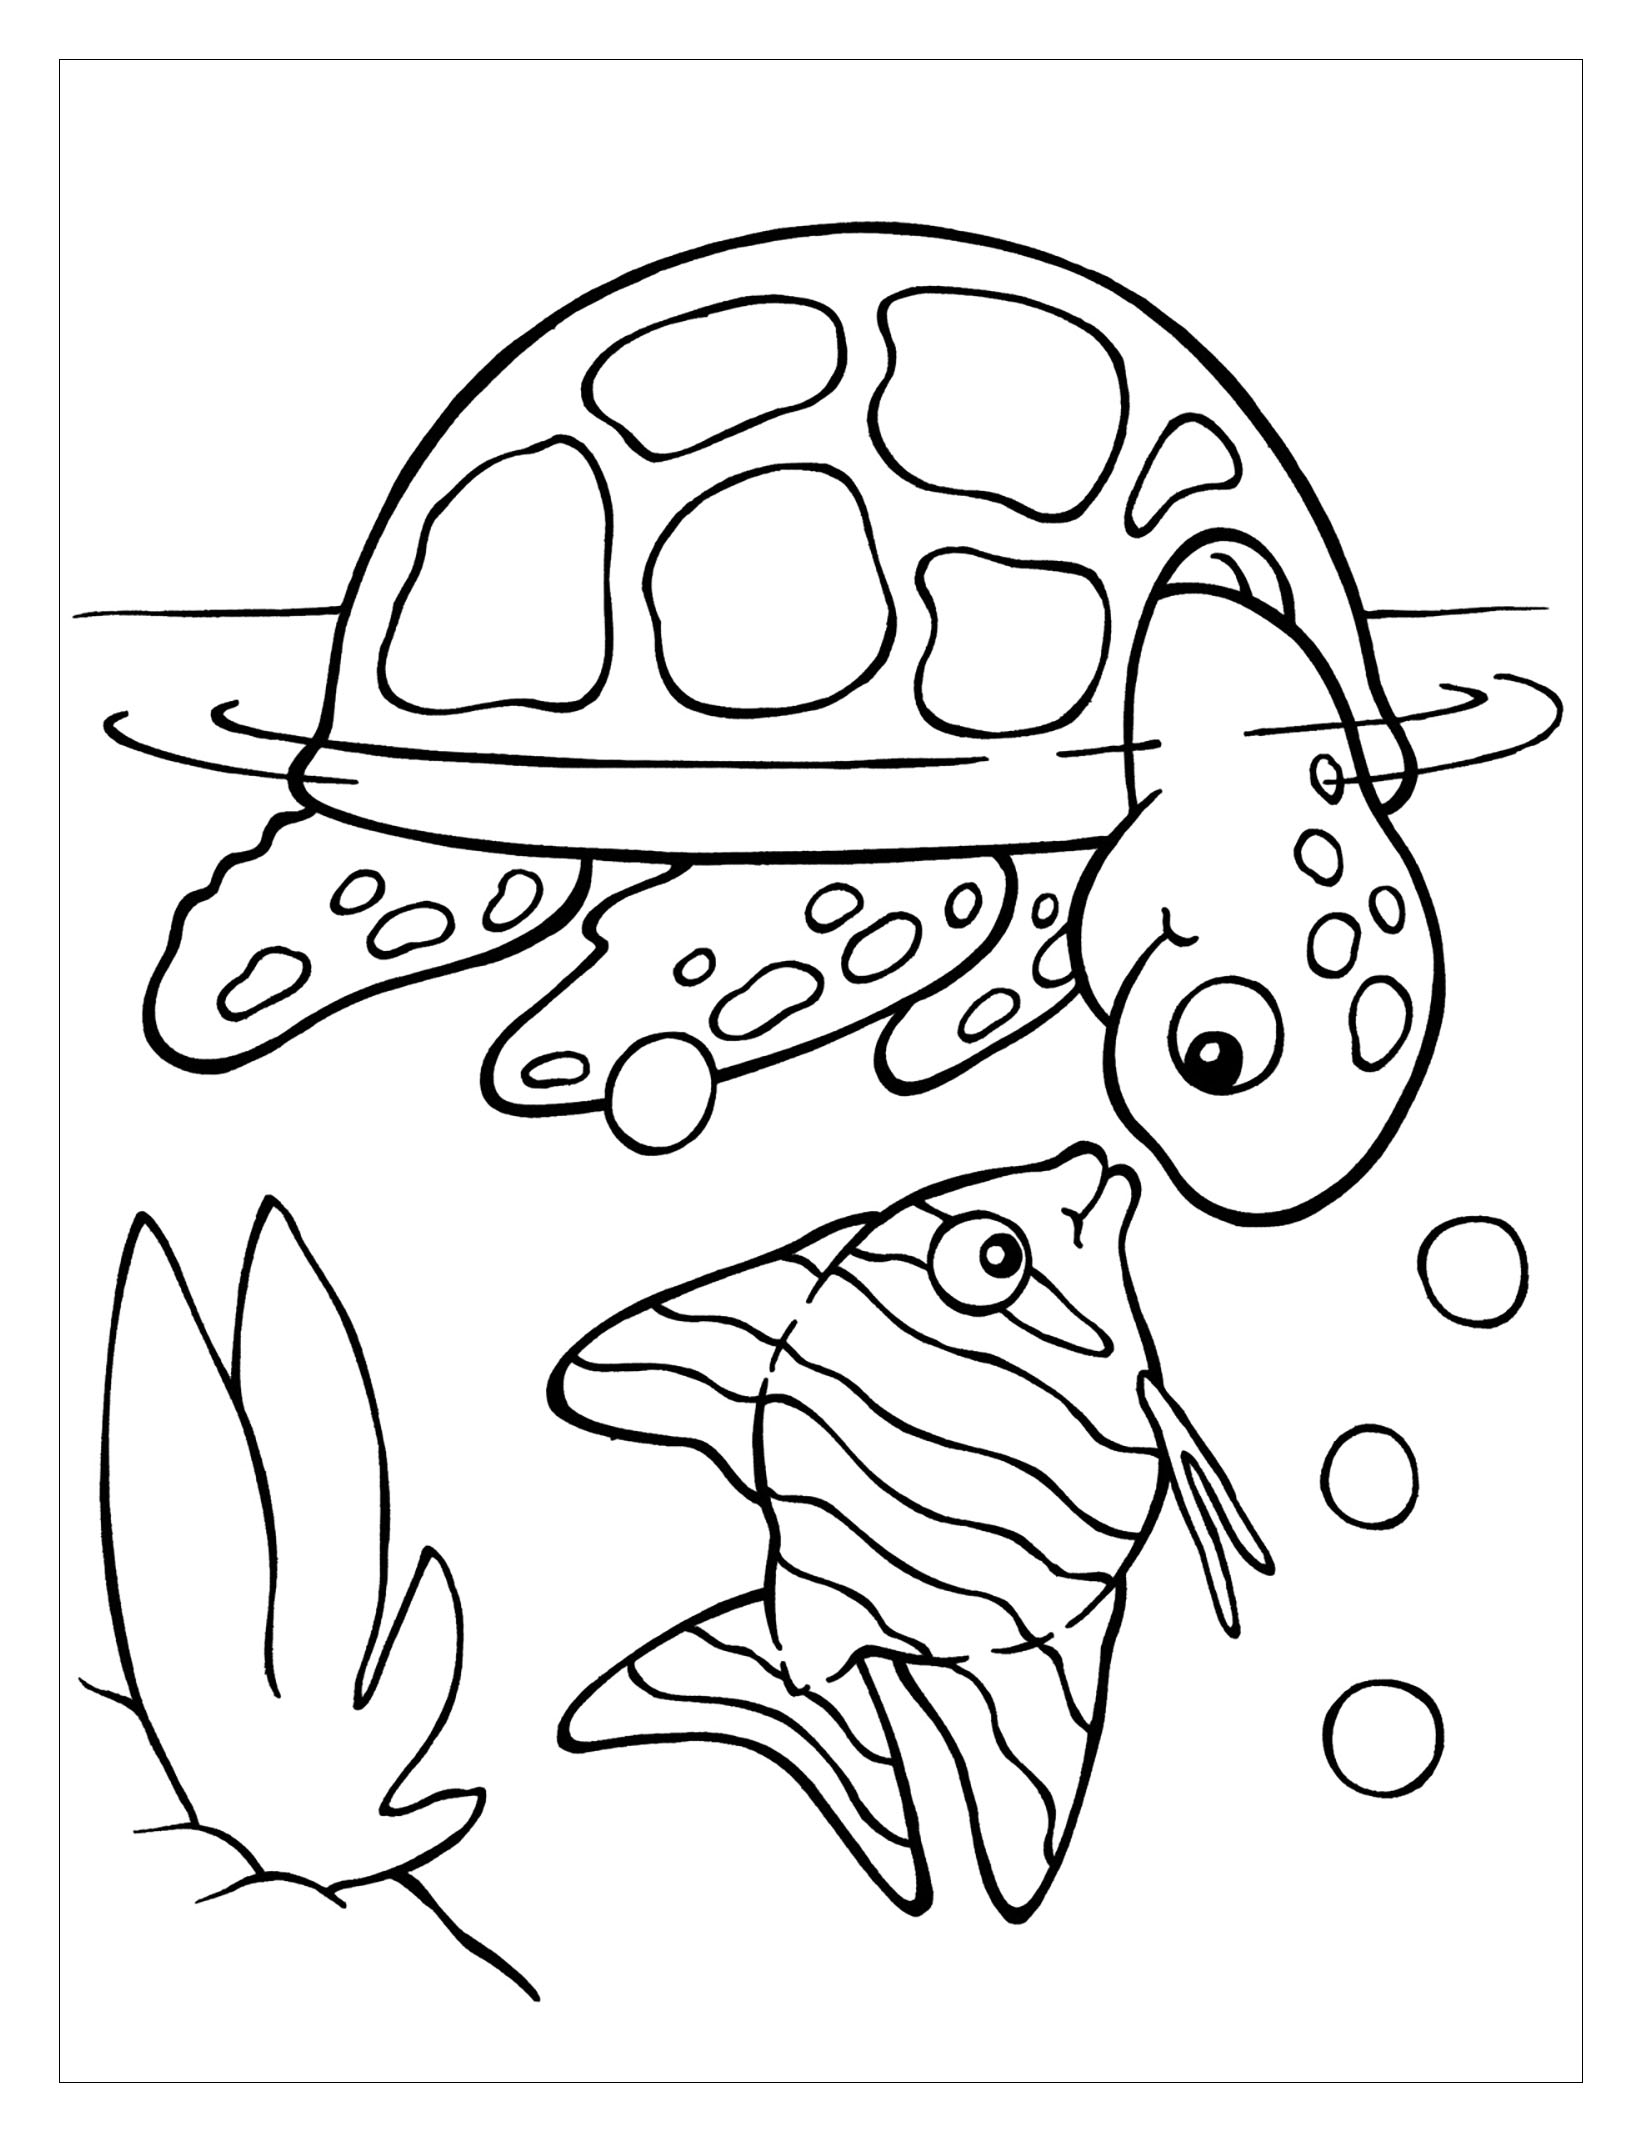 full size coloring pages turtles to color for kids turtles kids coloring pages coloring size pages full